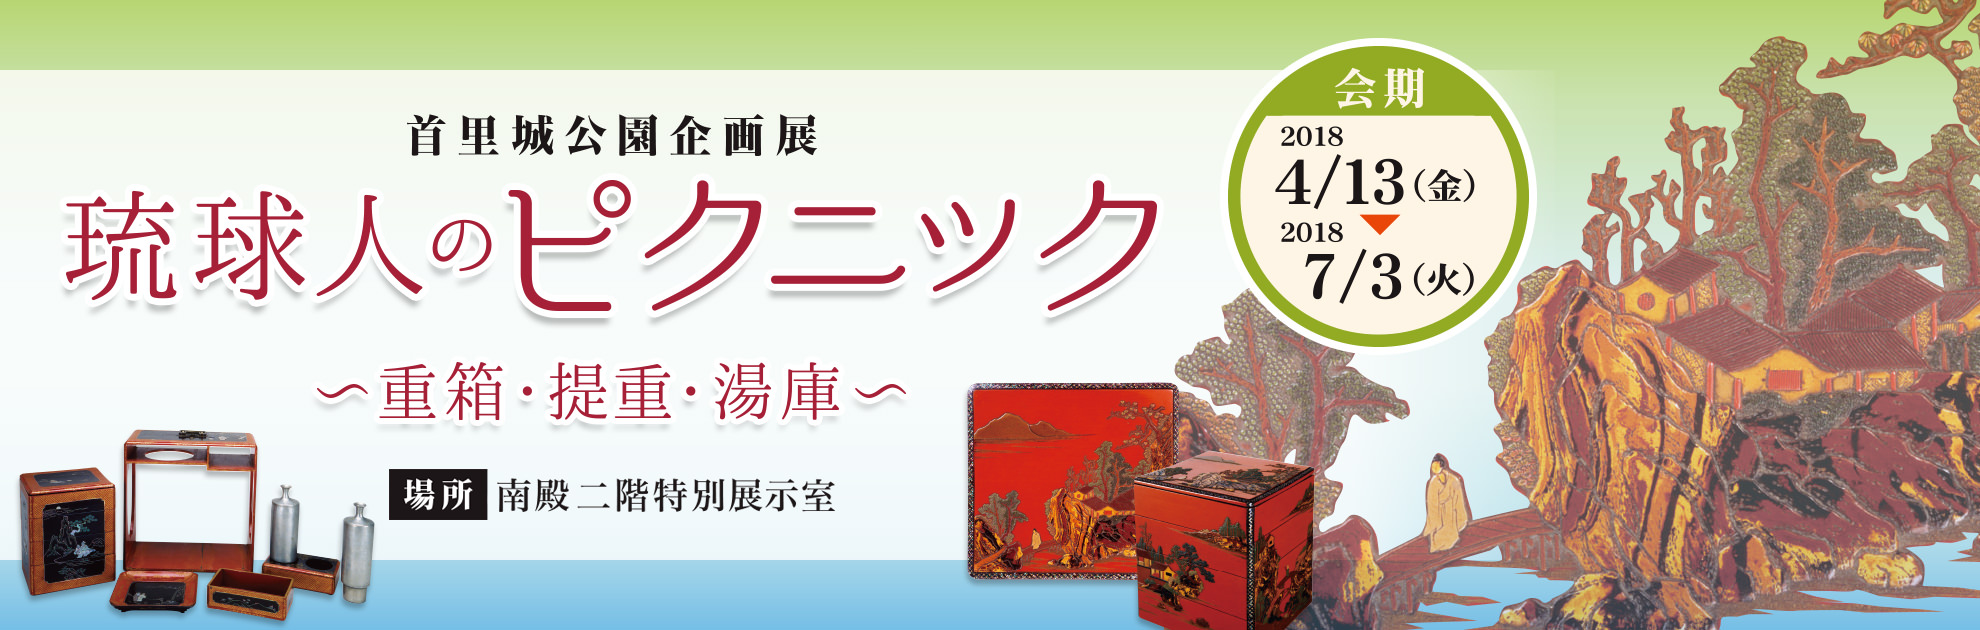 """Shurijo Castle Park plan exhibition """"storage of picnic - portable tableware, nest of boxes, hot water ~ of Ryukyuan"""""""